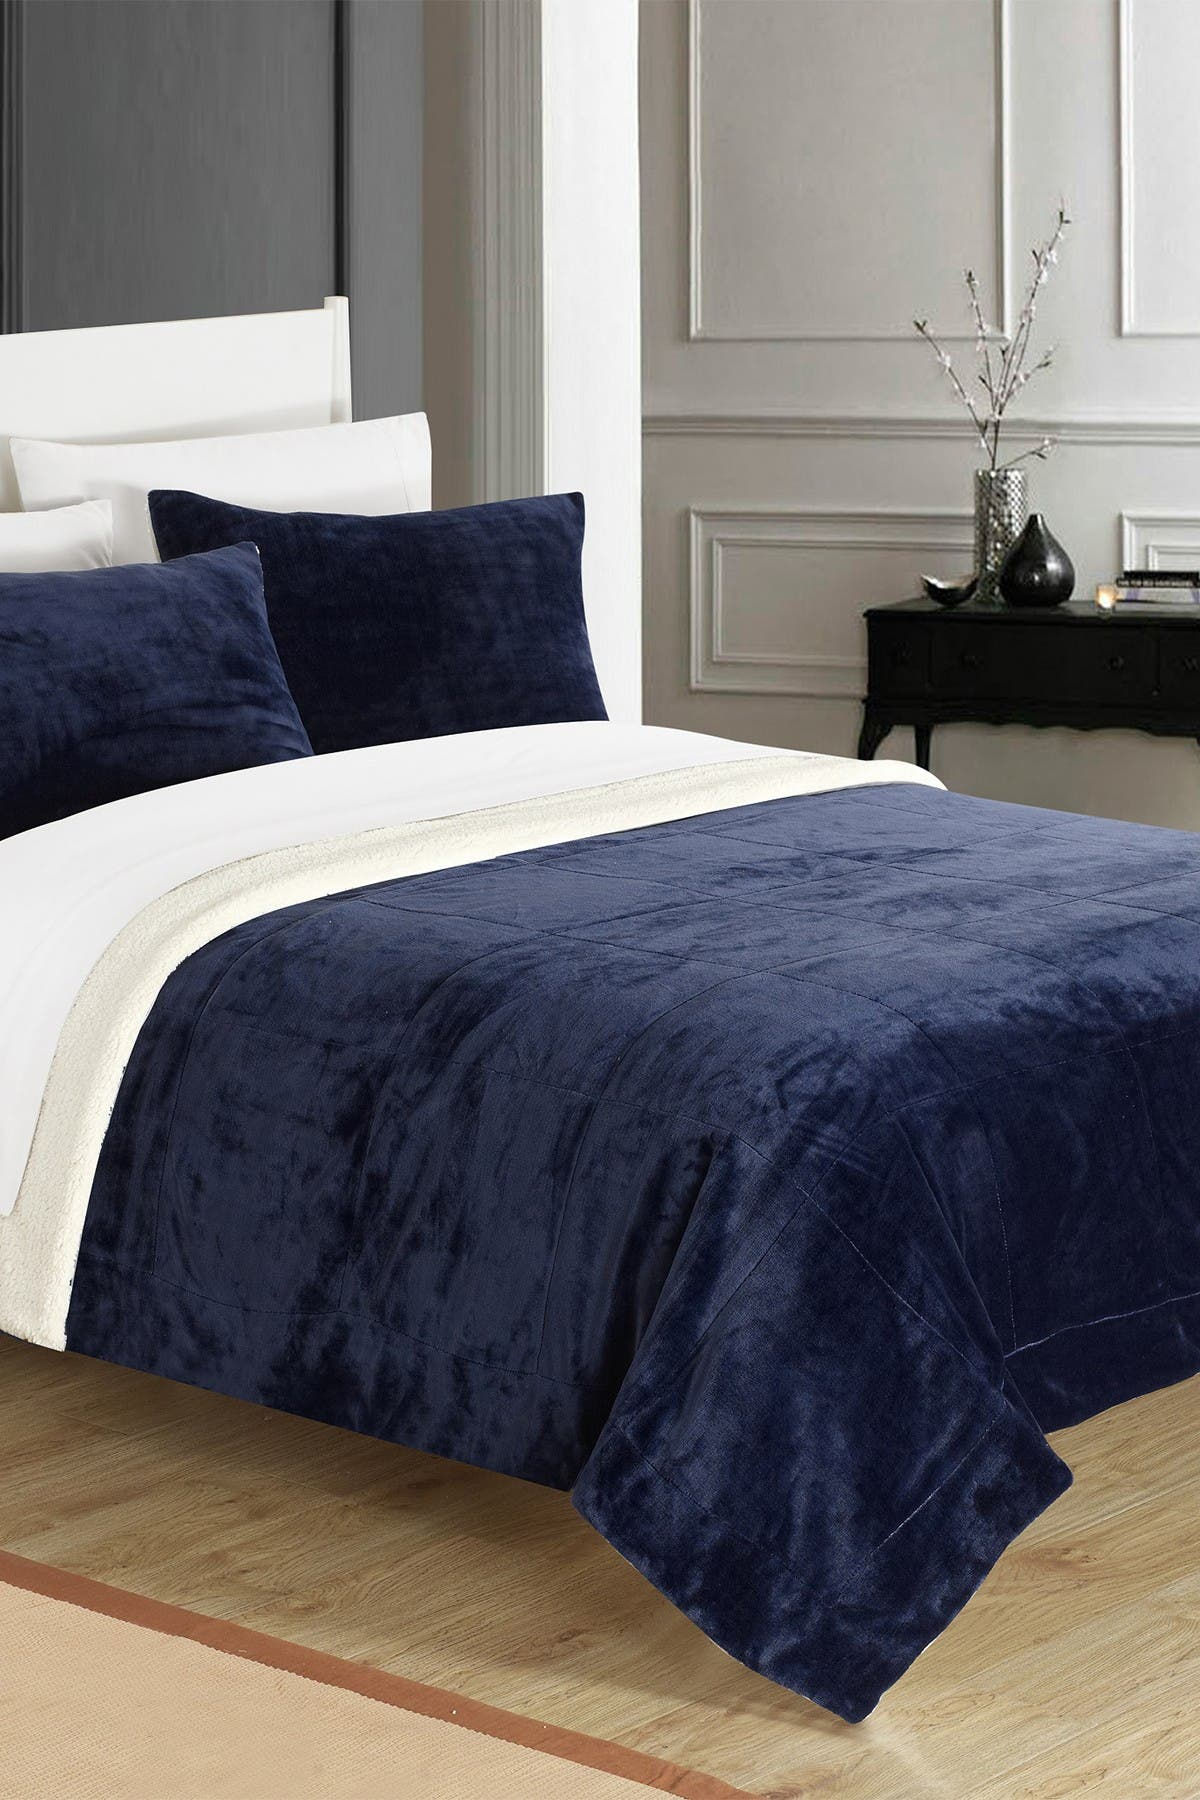 Image of Chic Home Bedding Queen Evelyn Faux Shearling Blanket Set - Navy